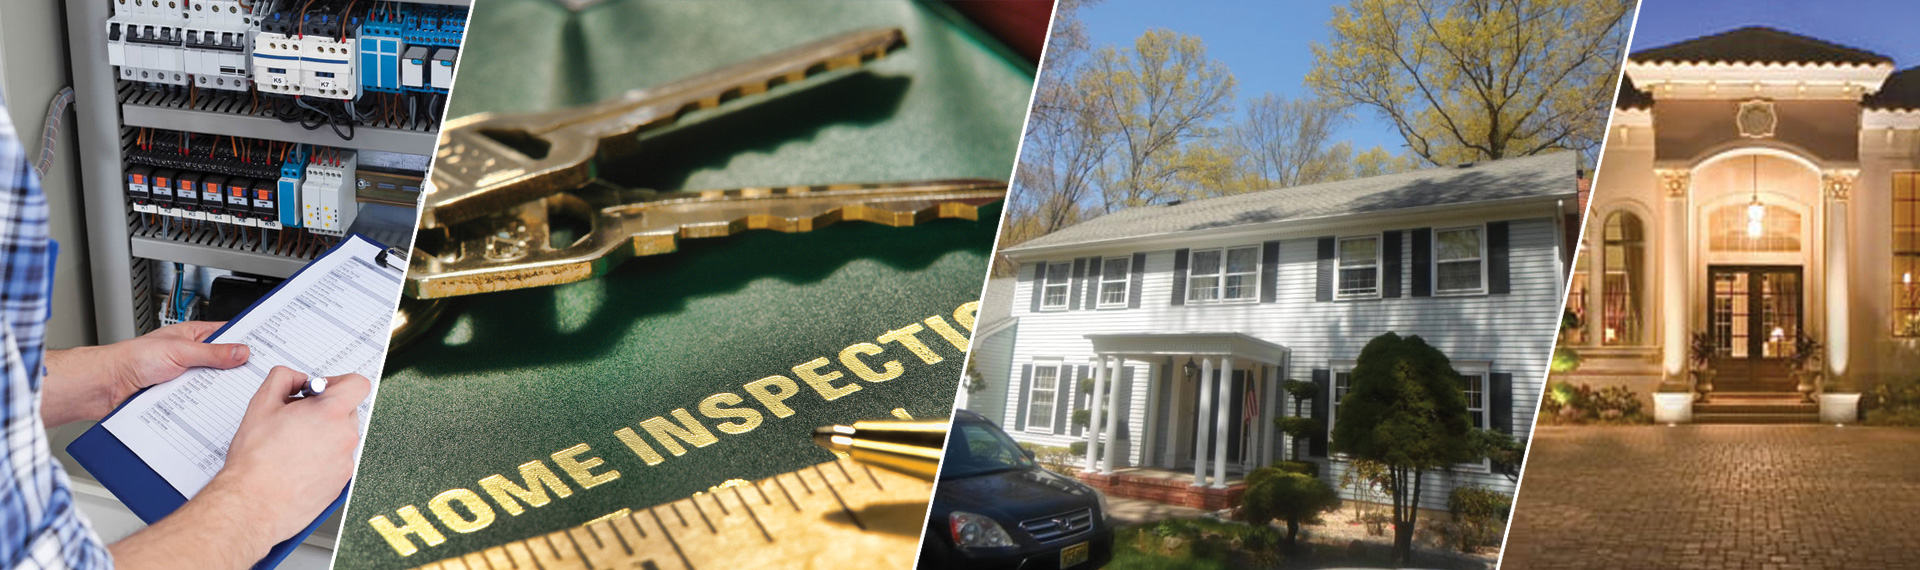 AAA House Doctors Engineers & Home Inspectors South plainfiled NJ